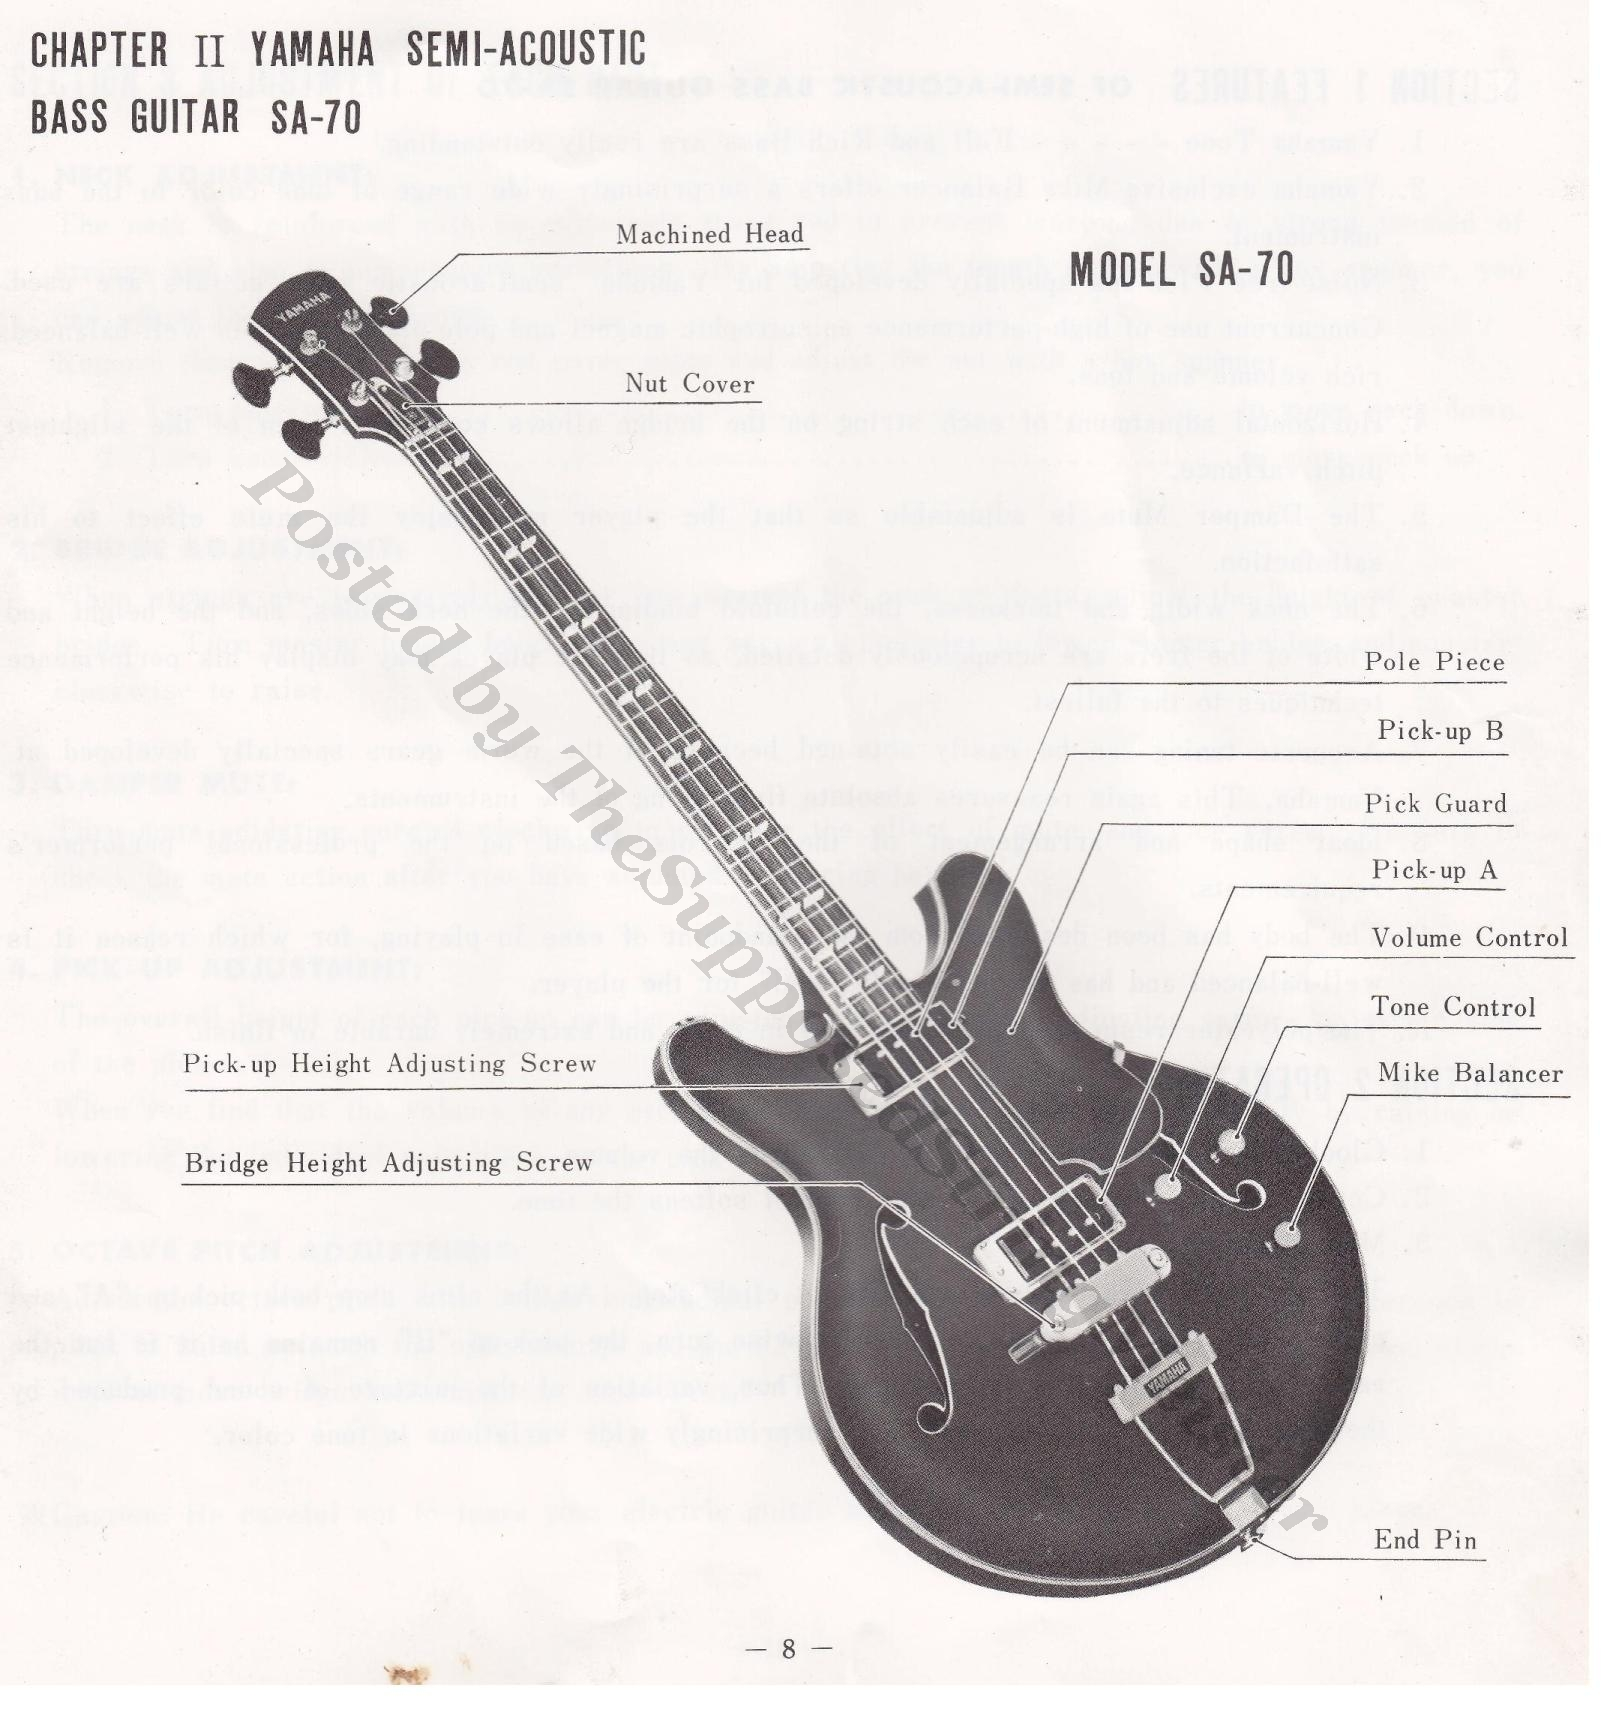 hight resolution of sa 70 yamaha guitar booklet page 8 layout full